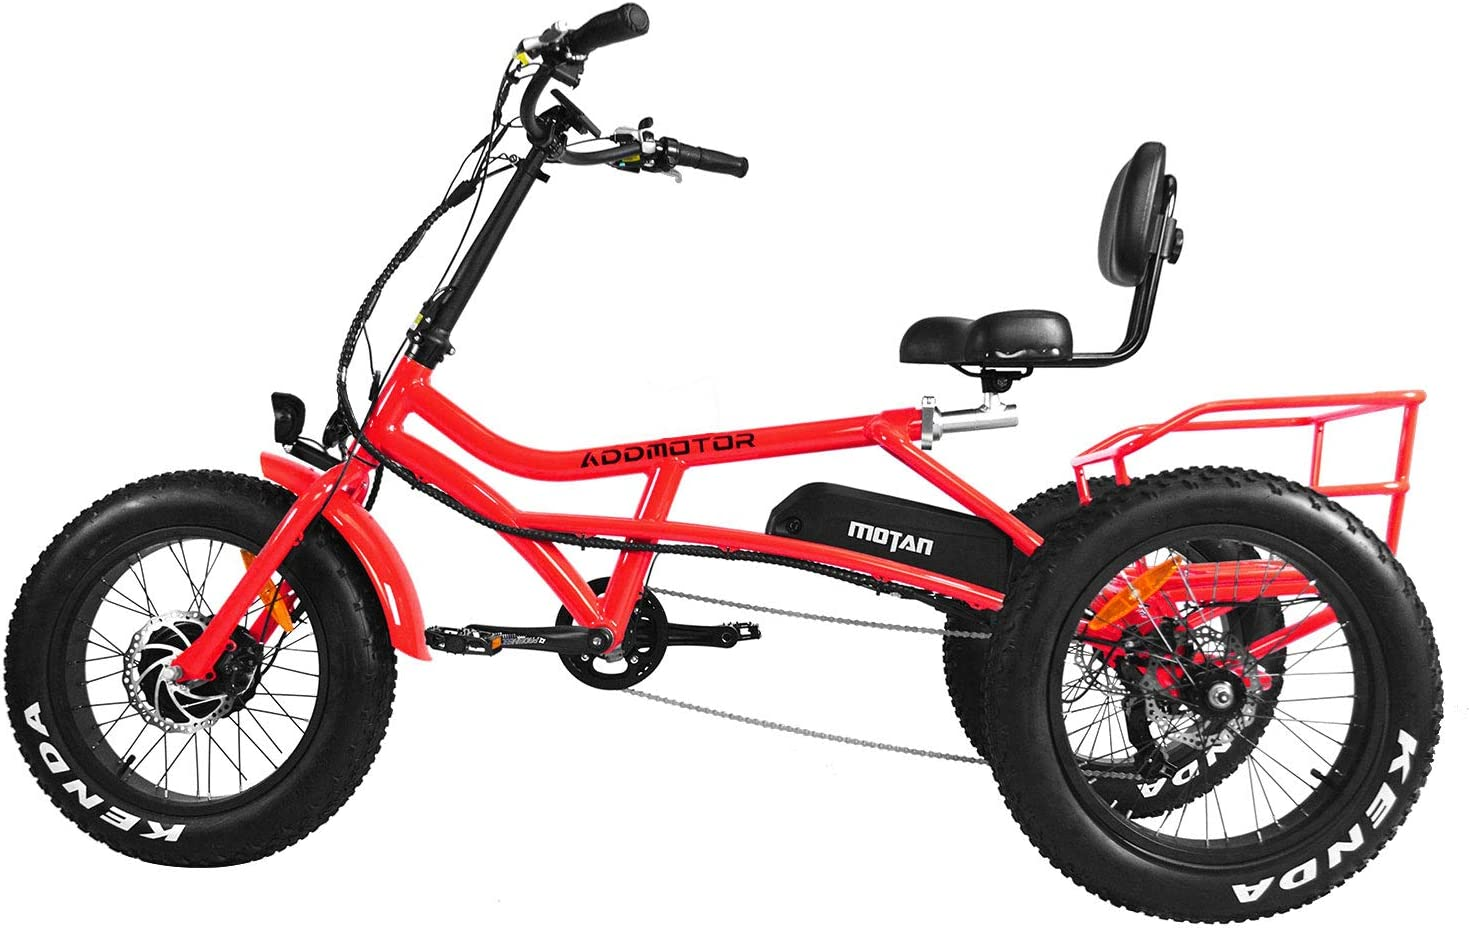 Addmotor Motan 750 W Electric Tricycle